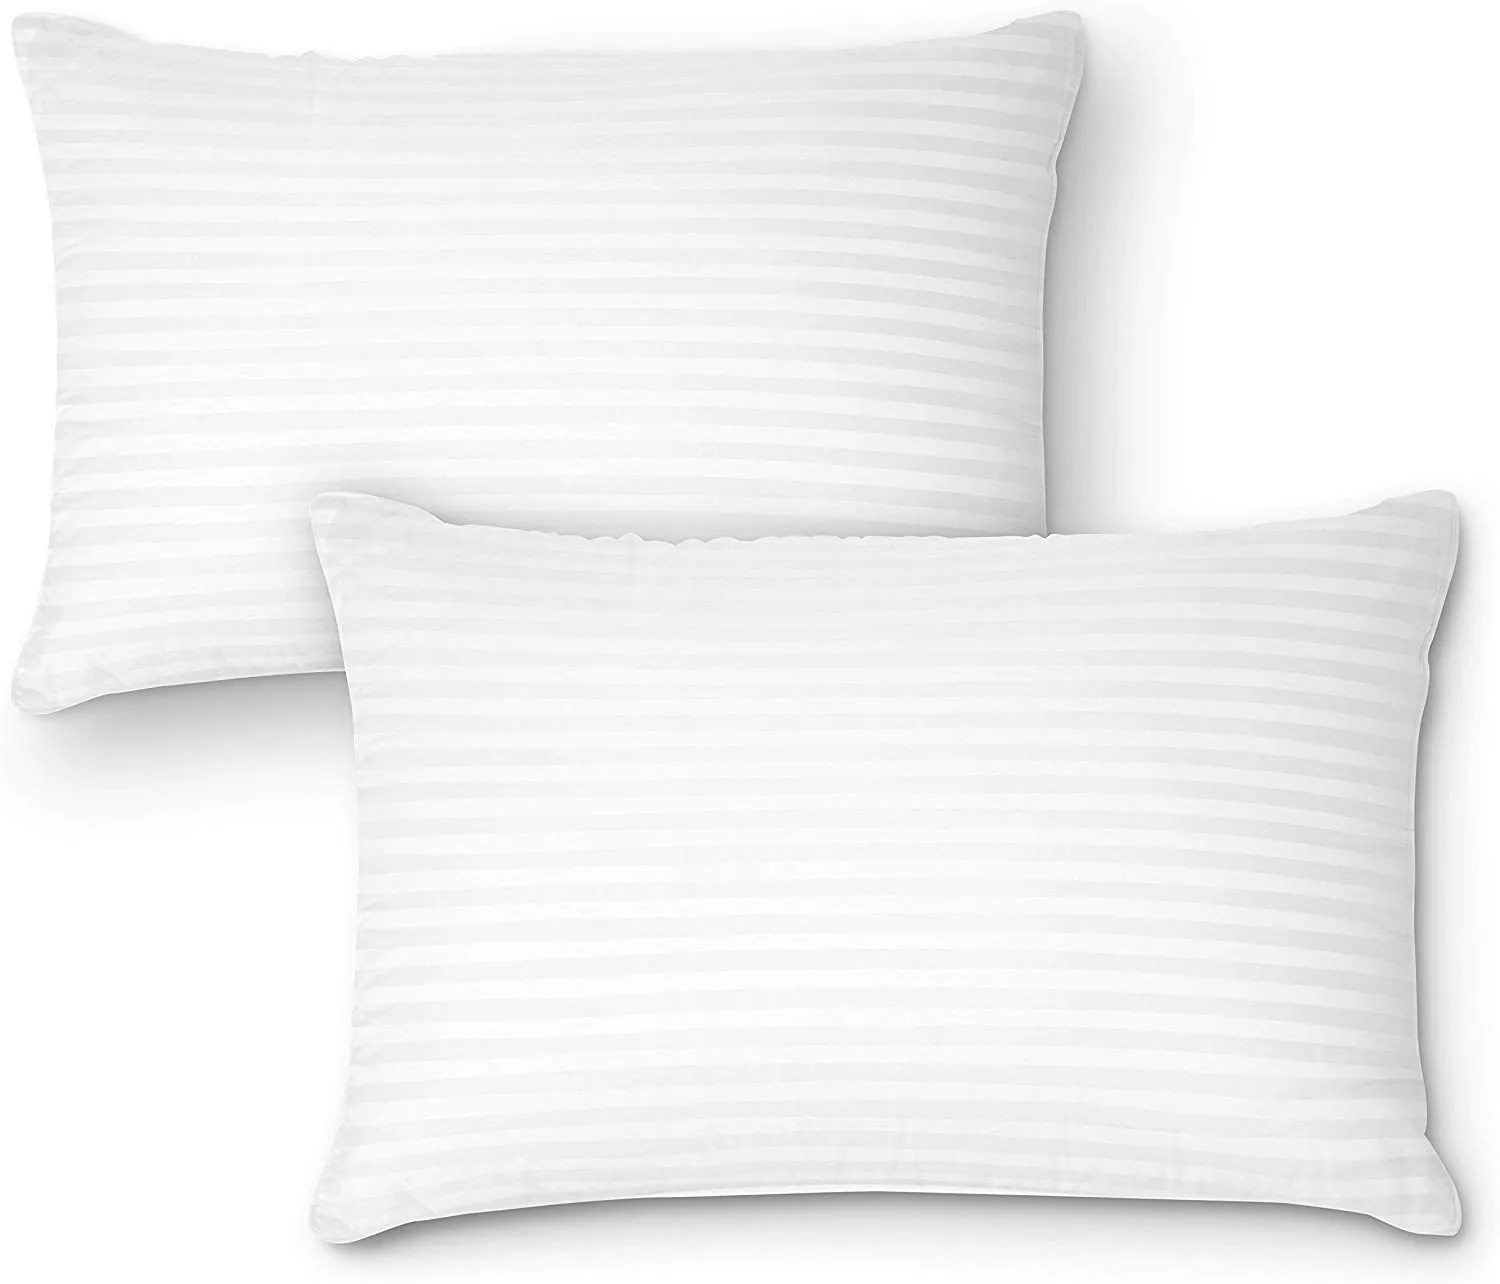 11 best pillows for side sleepers in